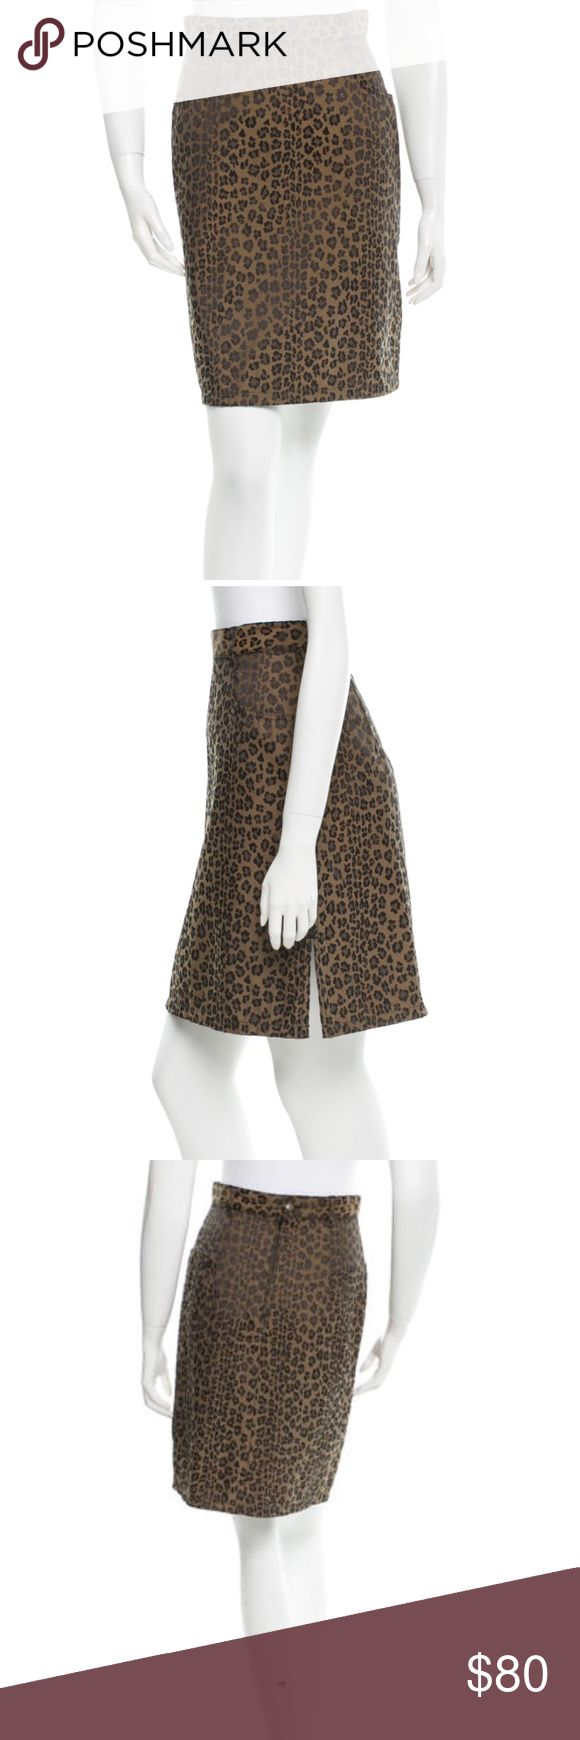 """Fendi Cheetah Skirt Brown Fendi pencil skirt with cheetah print throughout and concealed zip closure at back. Waist: 26"""" Hip: 36"""" Length: 21.5"""" Condition: Very Good. Faint wear throughout. Fabric: 70% Polyester, 30% Cotton Designer: Fendi Fendi Skirts Midi"""